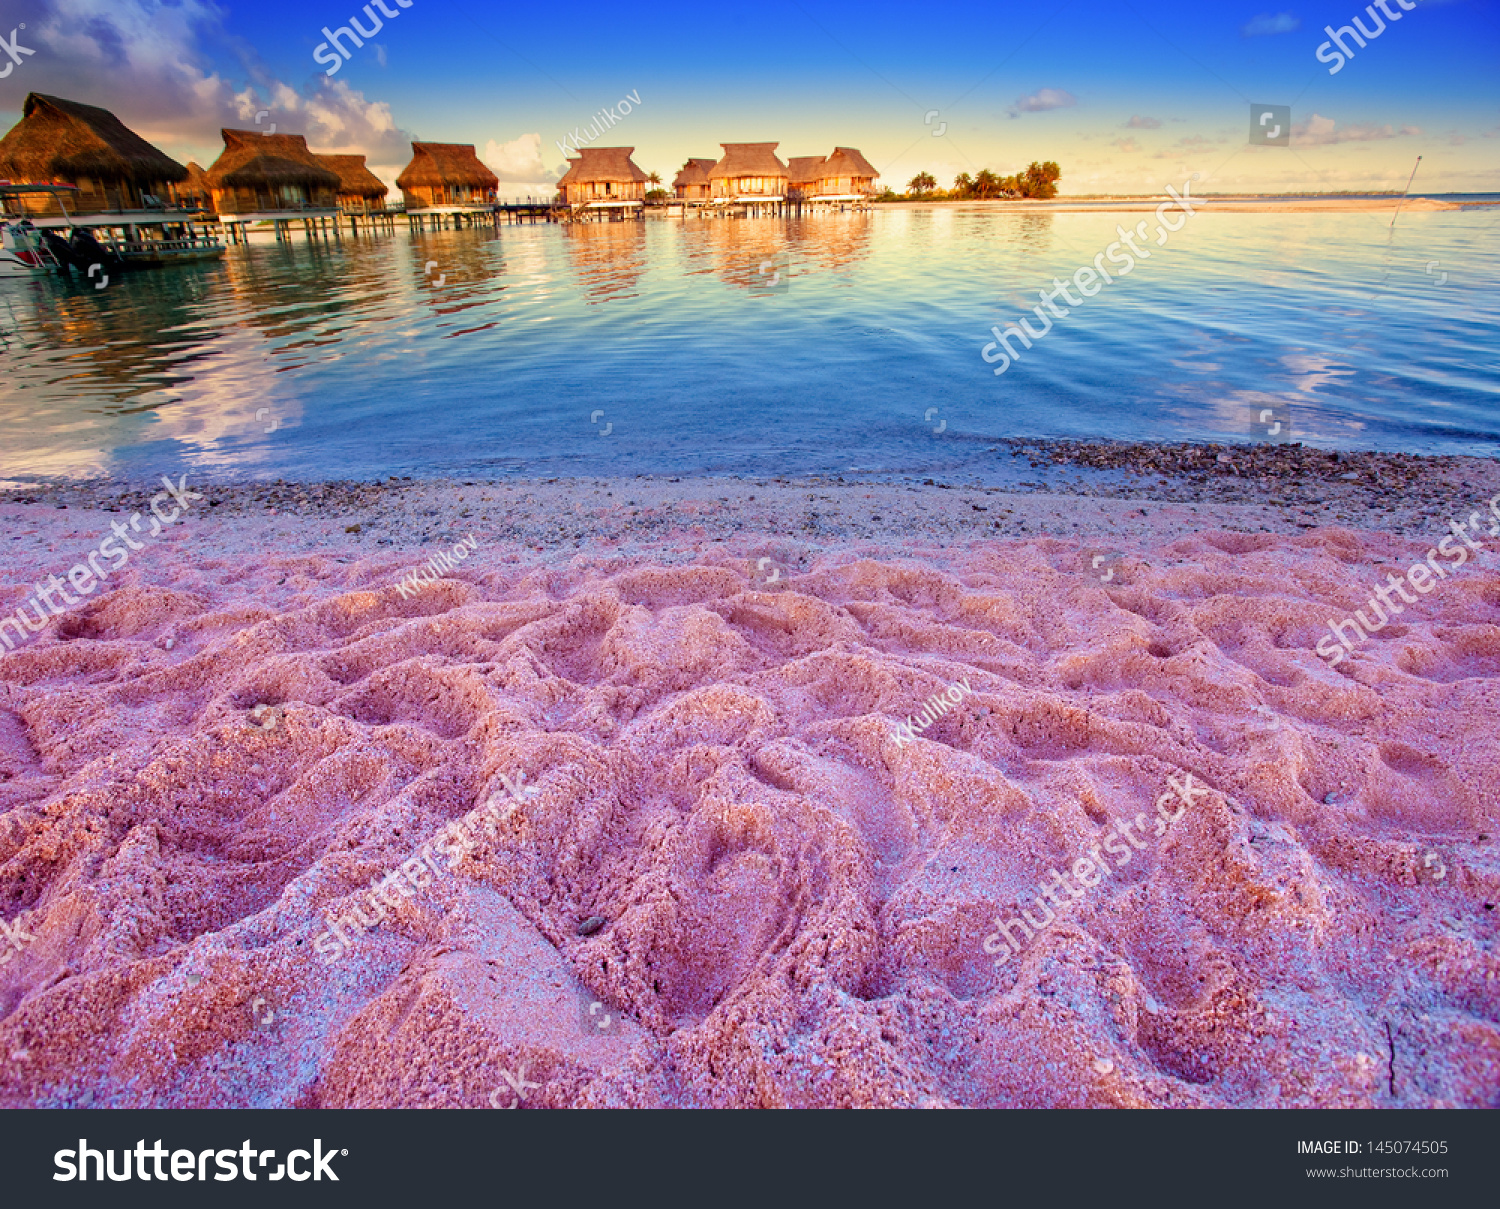 Beach With Pink Sand And Lodges On Water